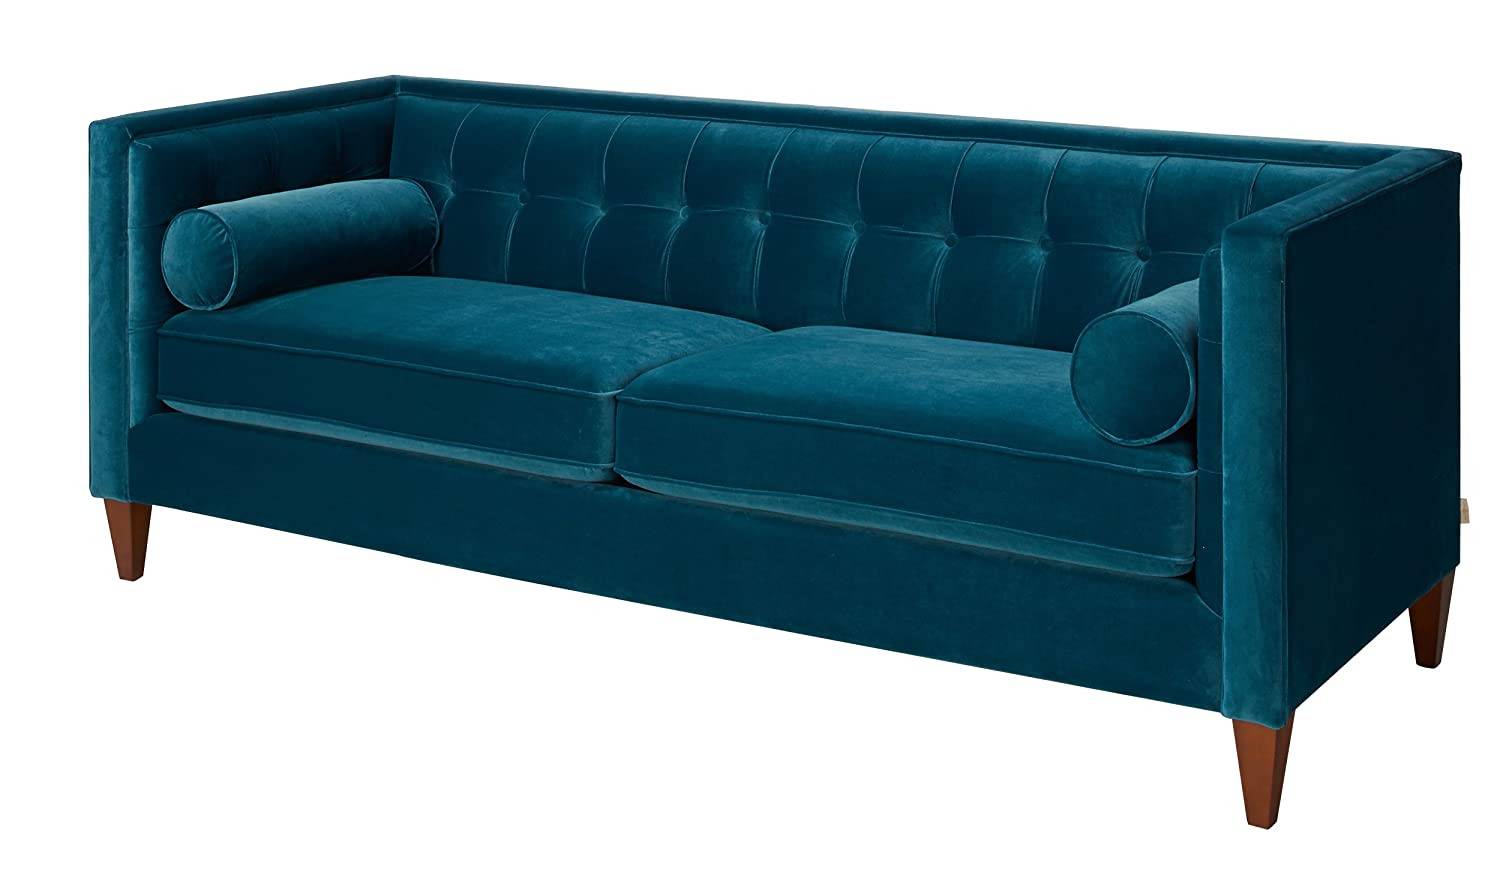 Amazon.com: Jennifer Taylor Home, Sofa, Satin Teal, Velvet, Hand Tufted,  Hand Painted And Hand Rub Finished Wooden Legs: Kitchen U0026 Dining